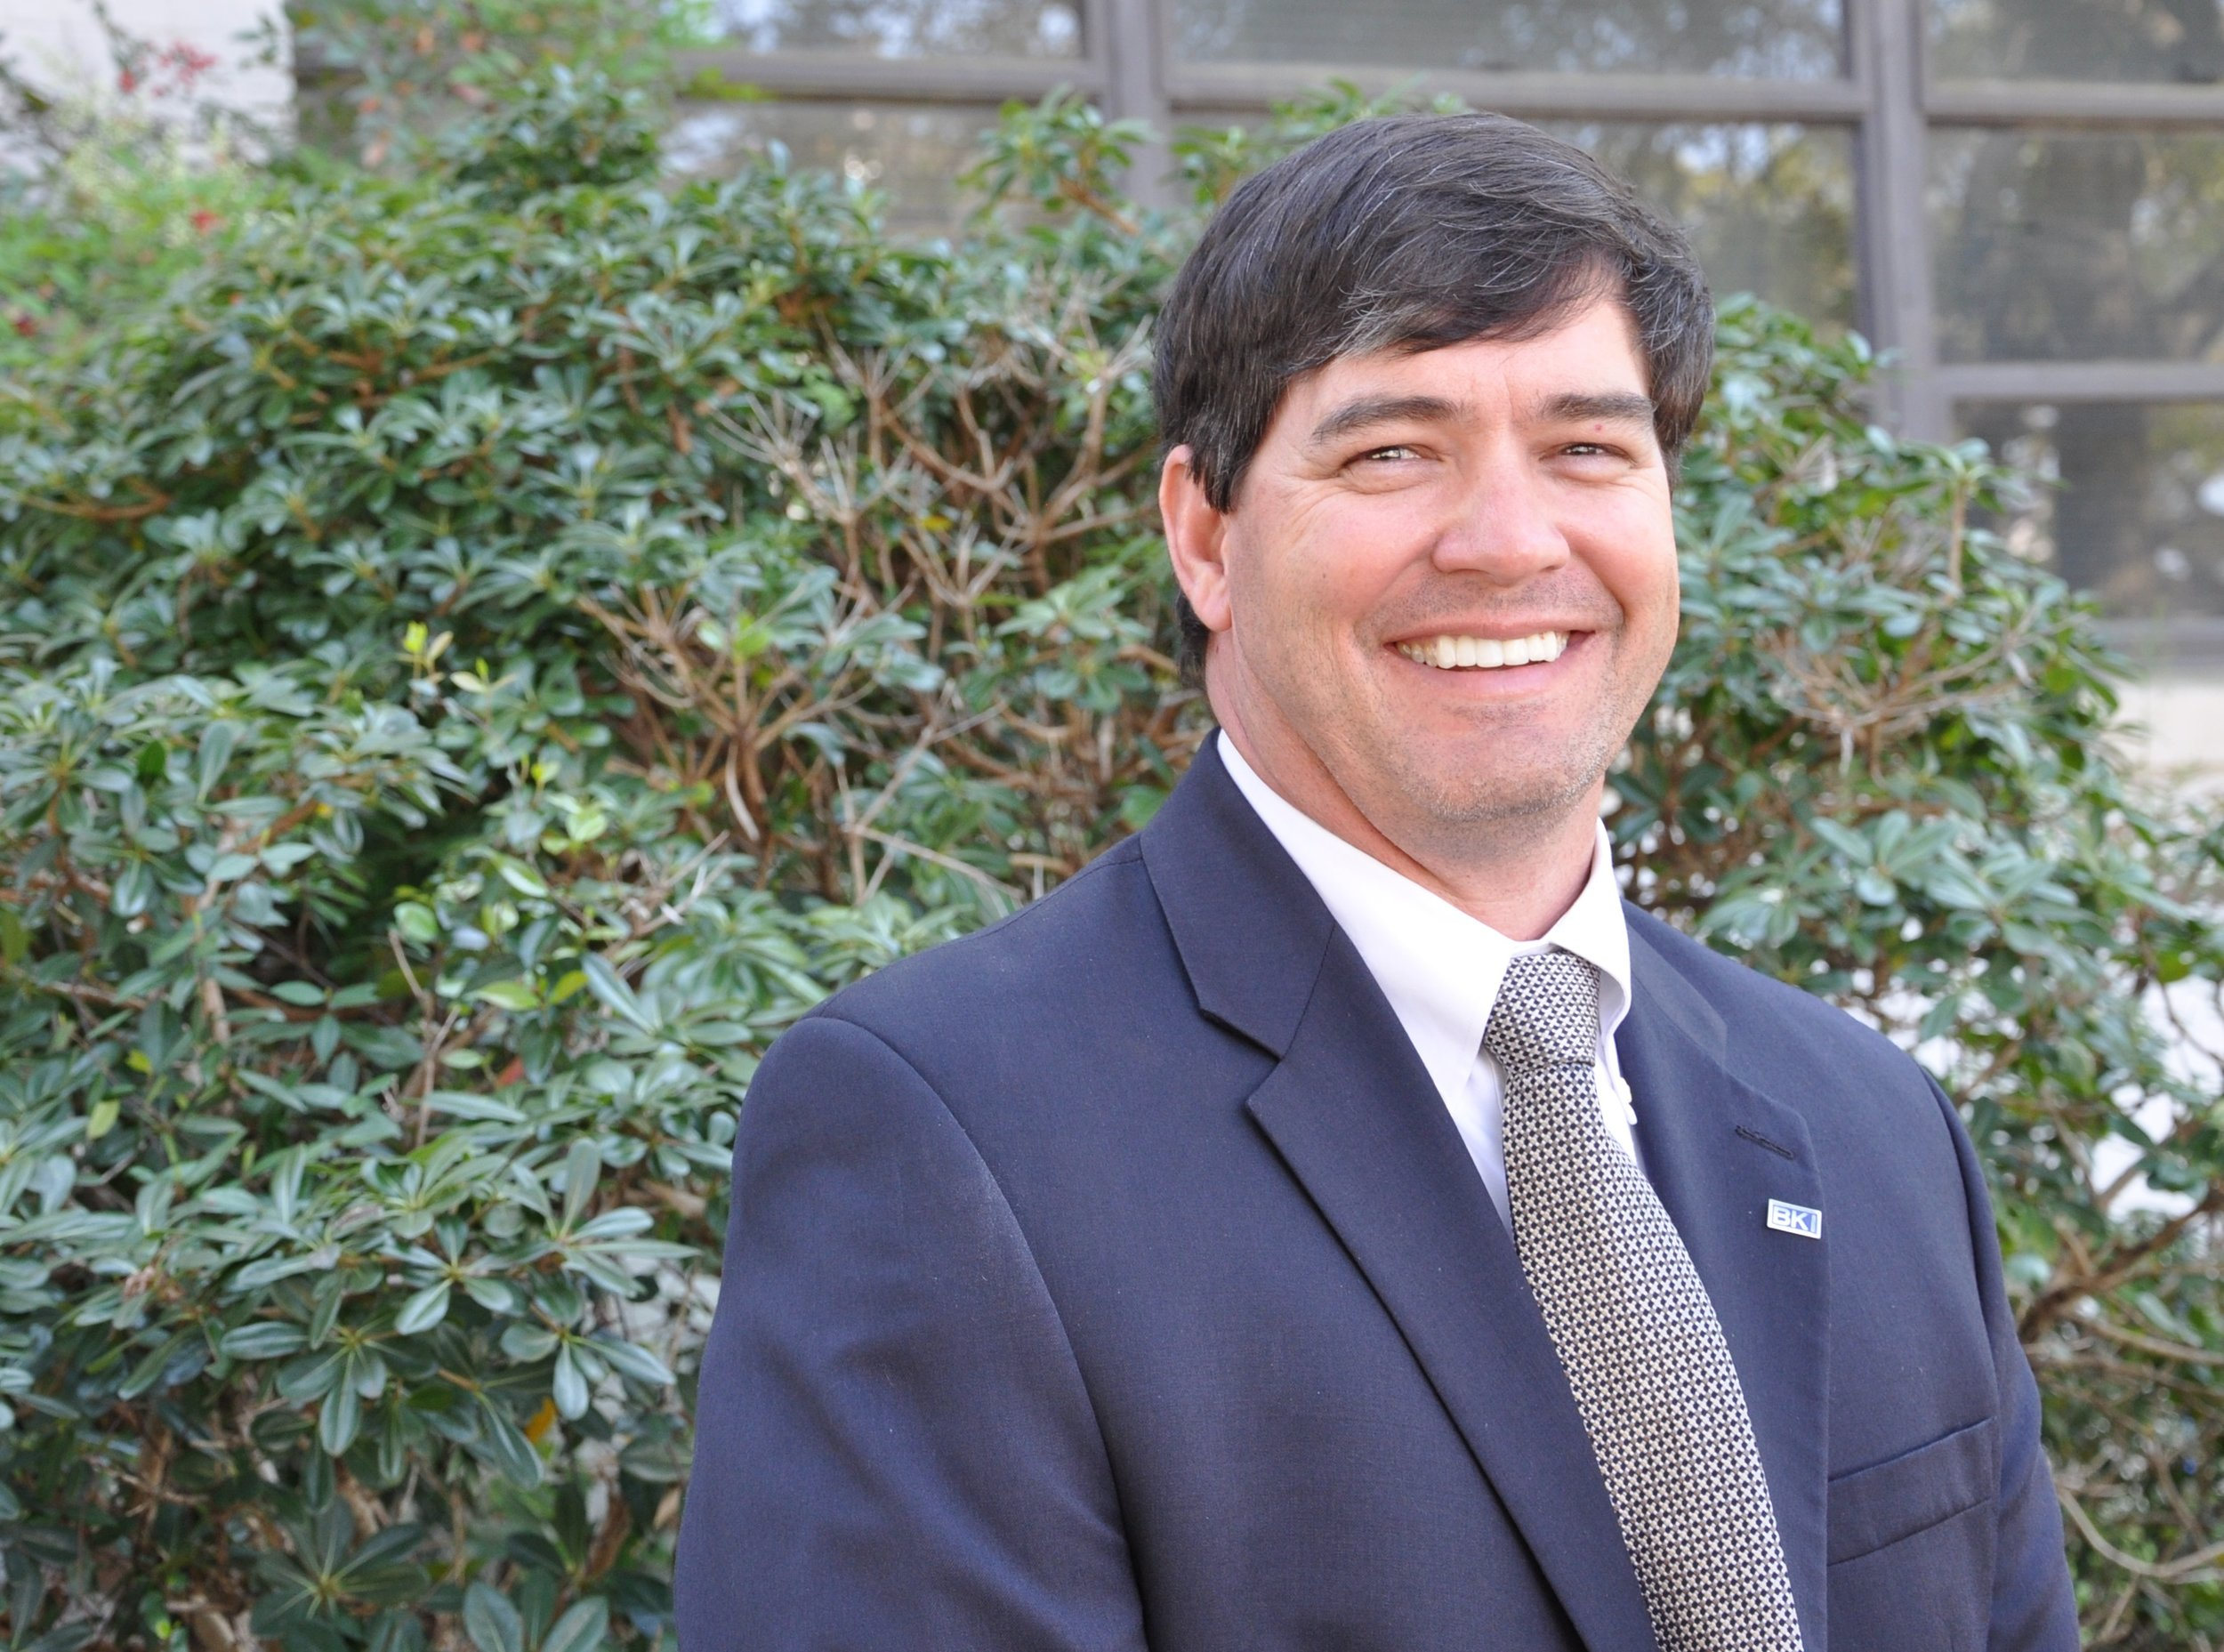 CRAIG P. WILLIAMS, PE   VICE PRESIDENT, TUSCALOOSA